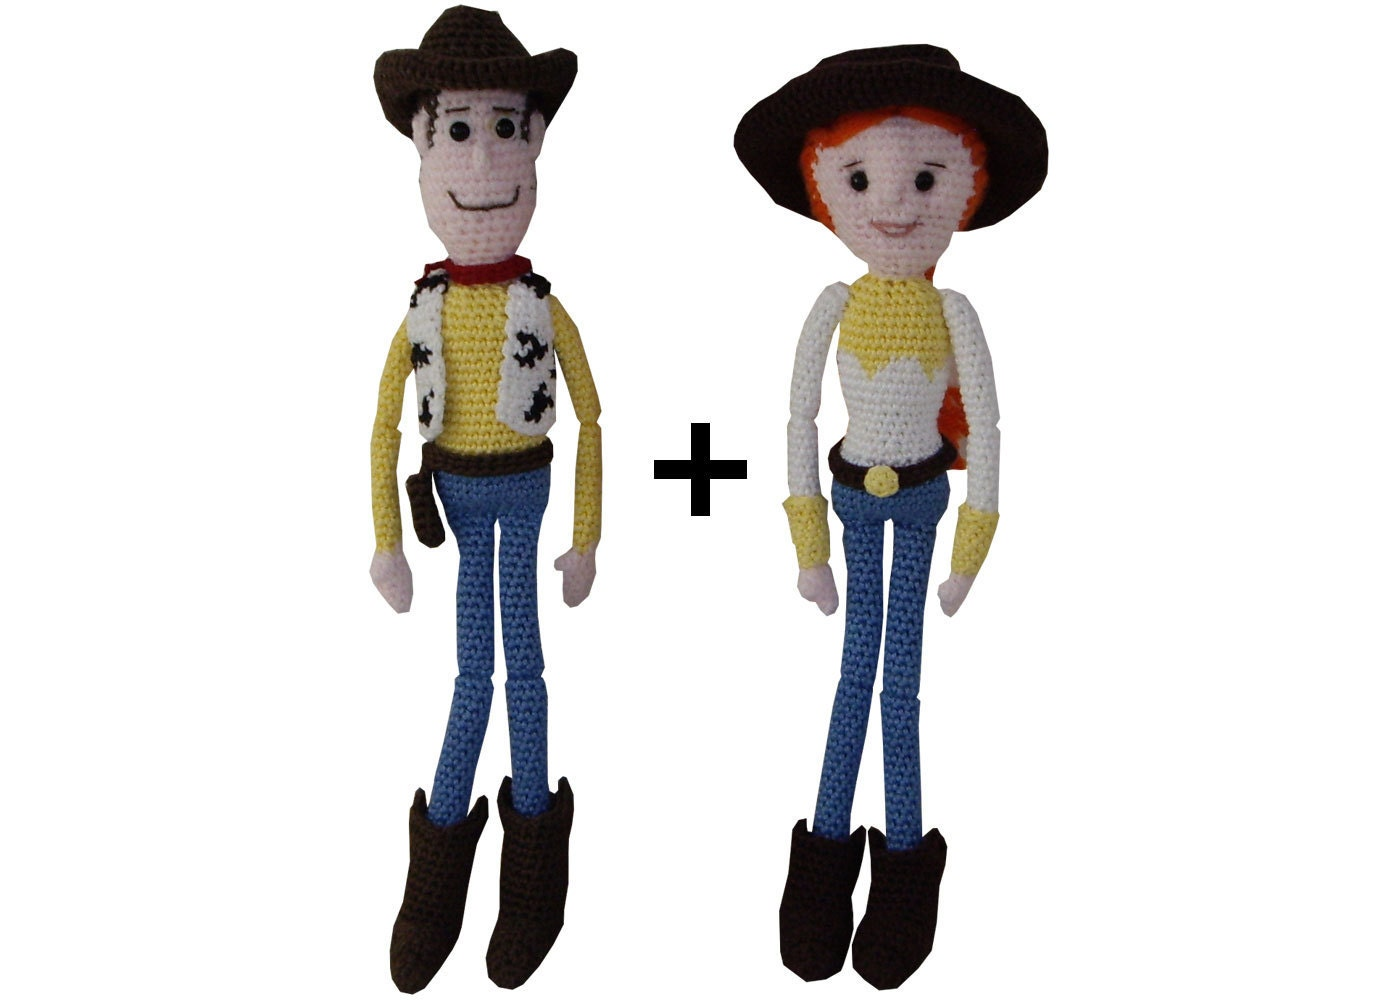 Toy Story Knitting Patterns Woody : Amigurumi Crochet Pattern: Jessie & Woody from Toy story